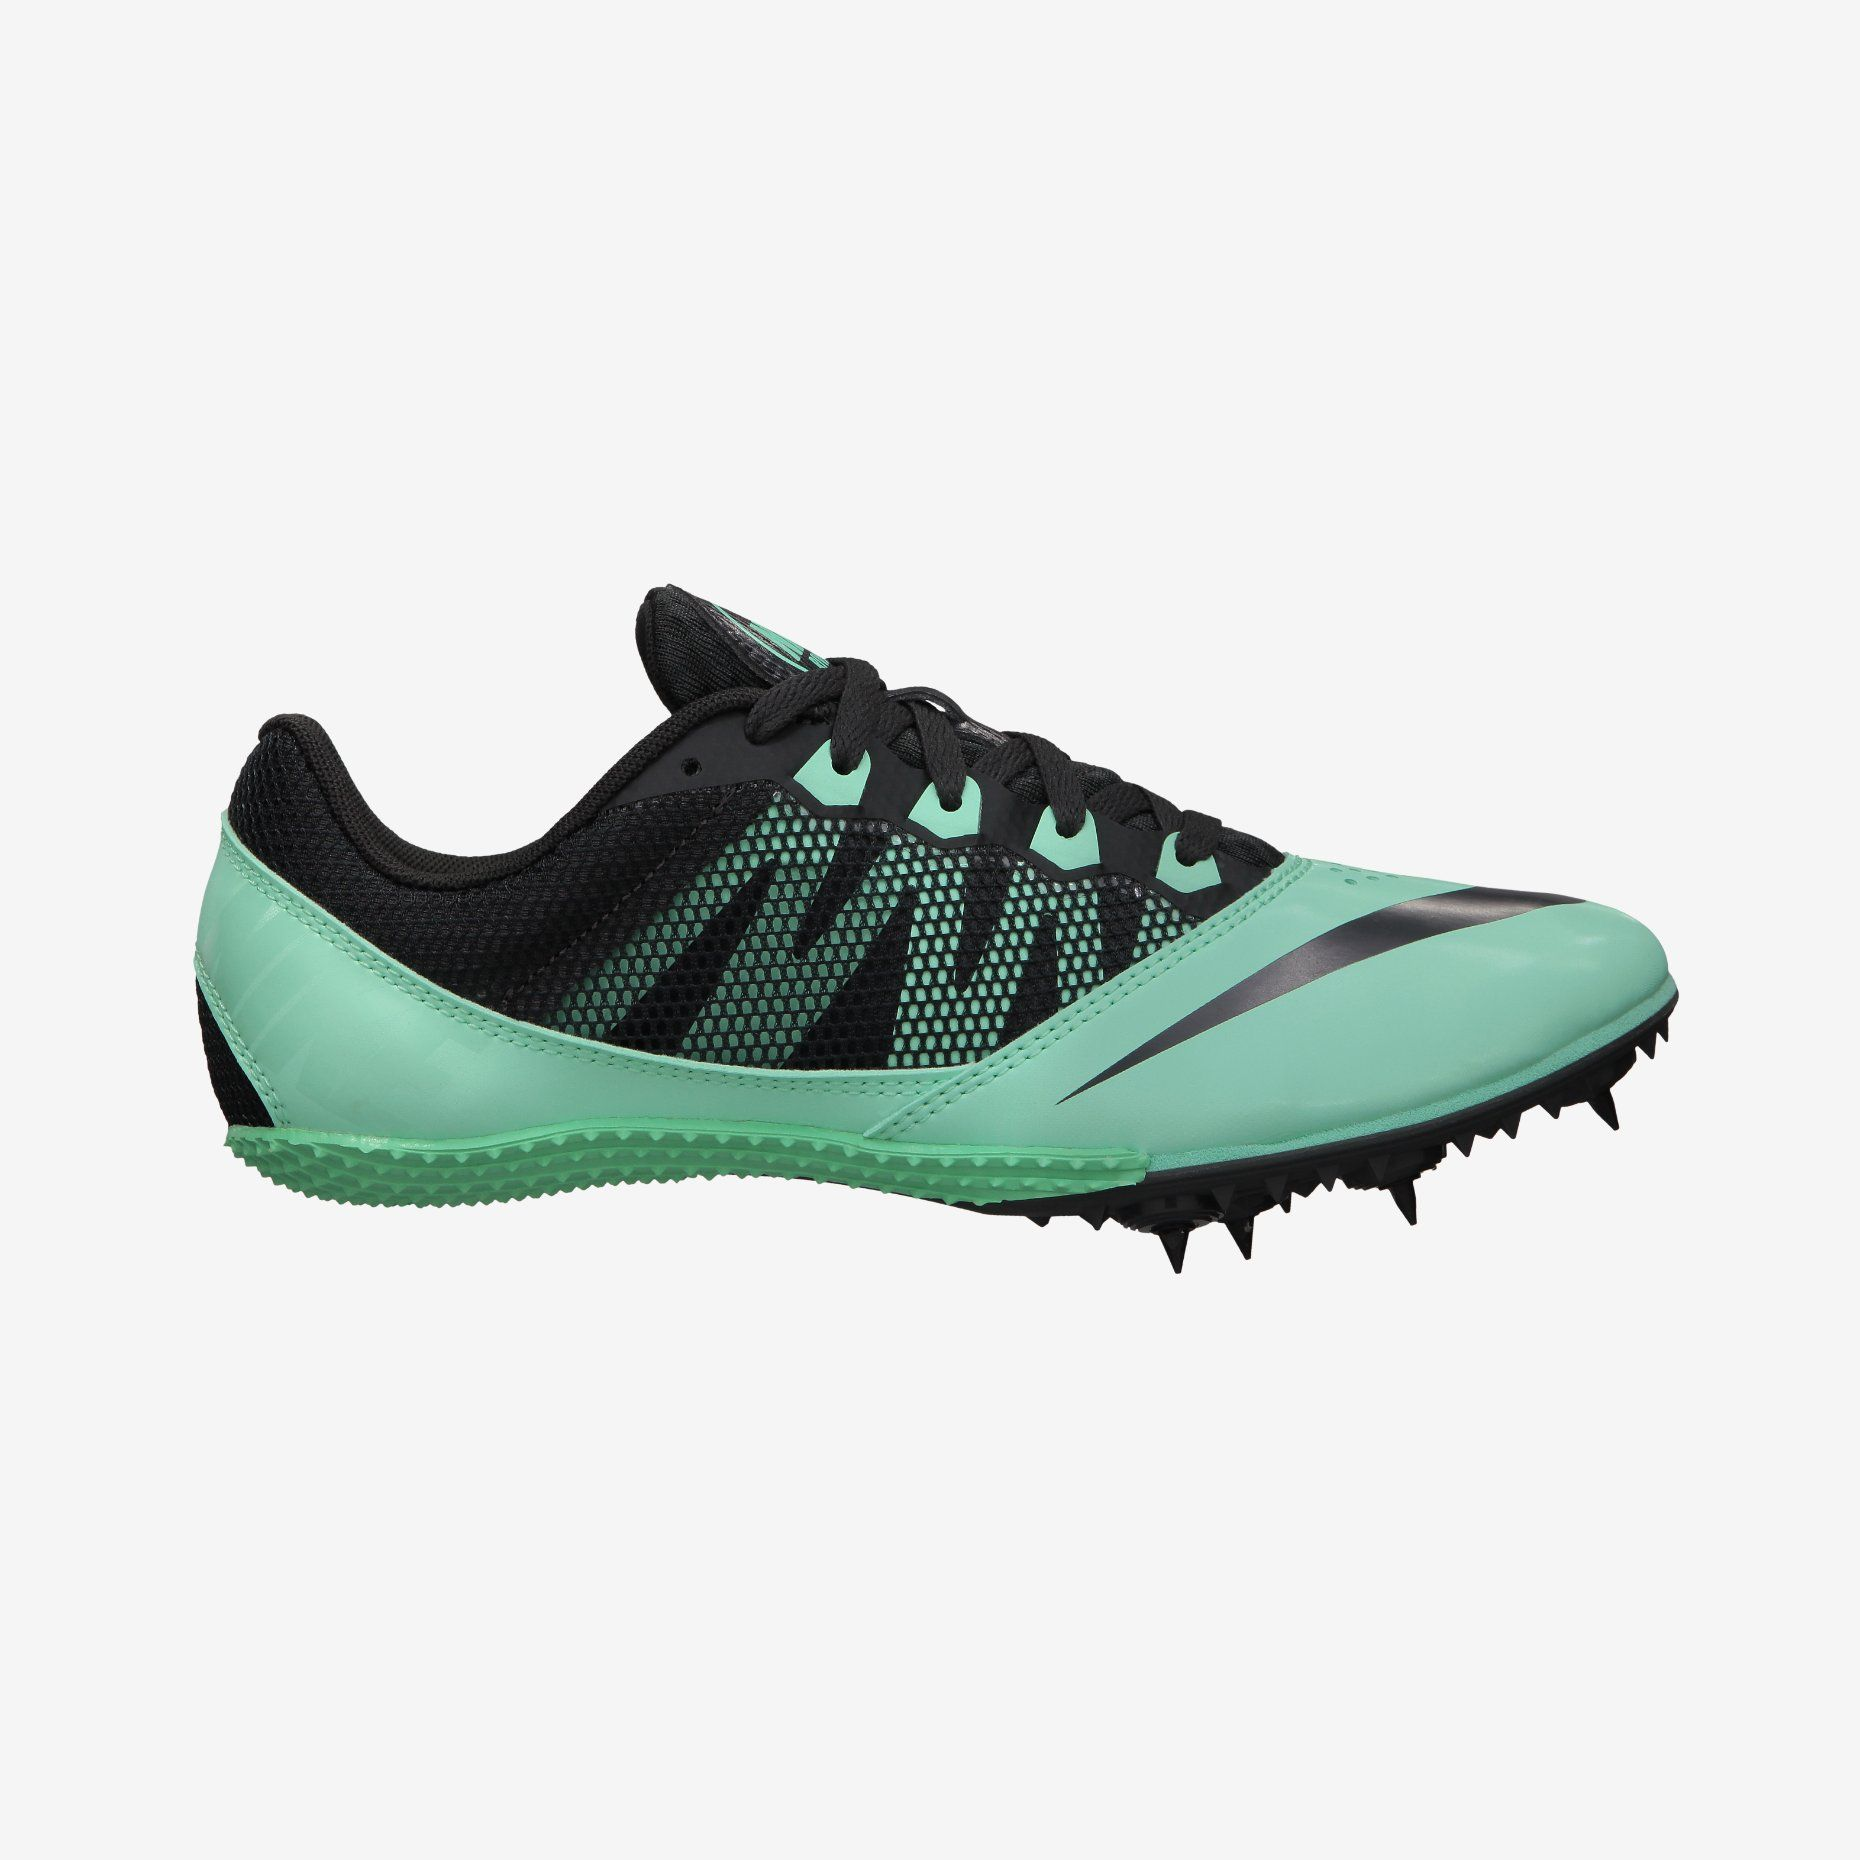 The Nike Zoom Rival S 7 Women's Track Spike.